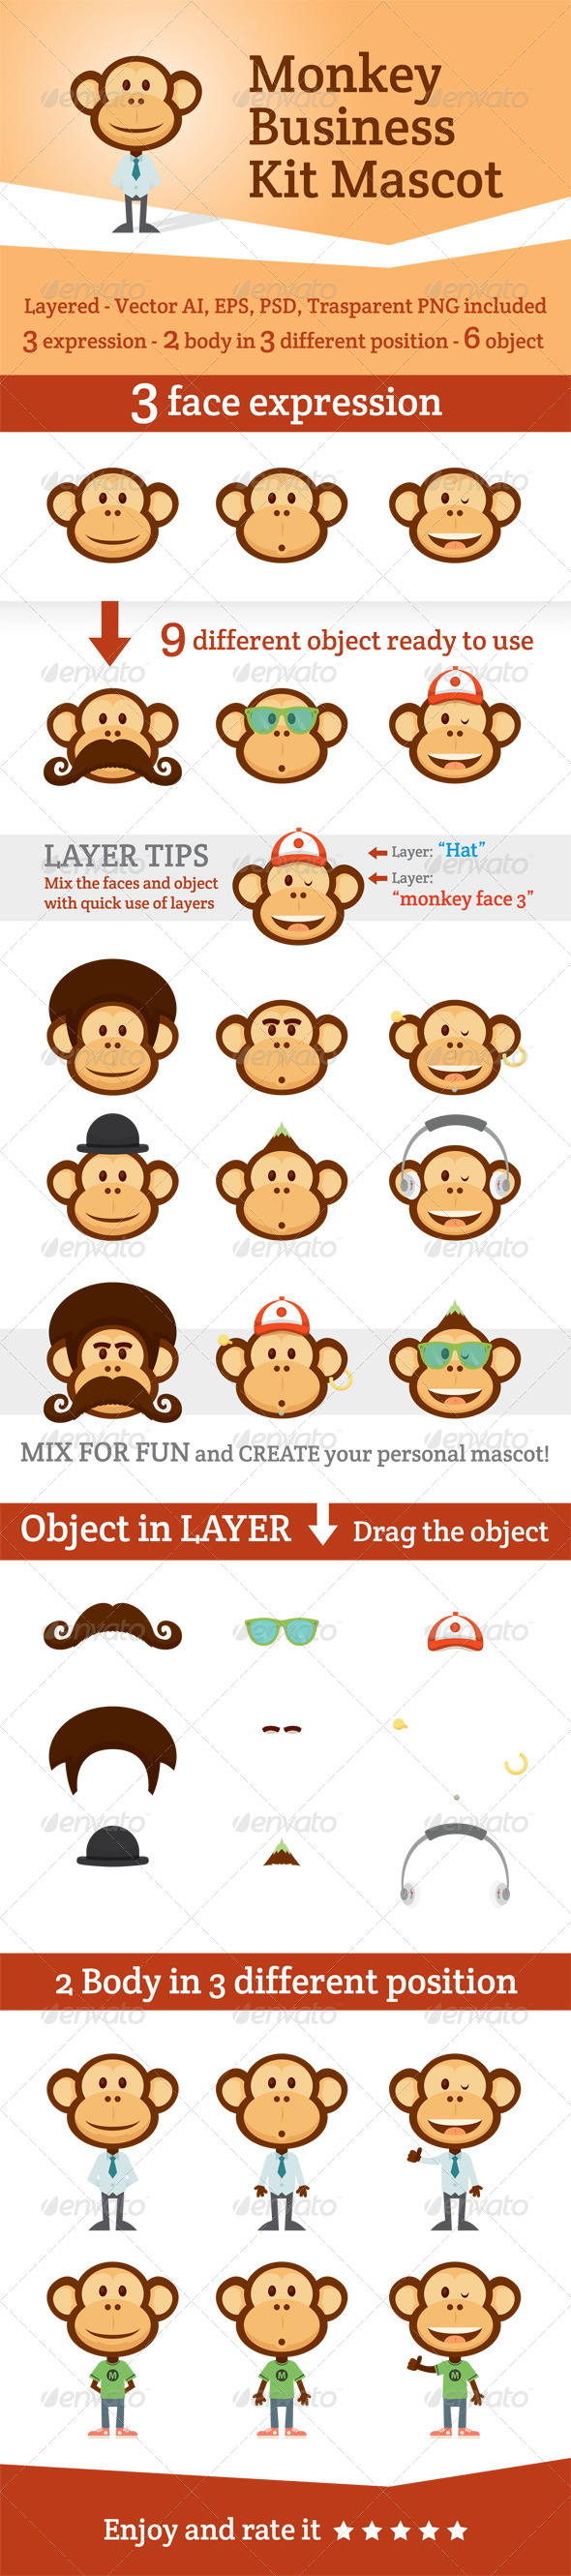 GraphicRiver Monkey Business Kit Mascot 5147791